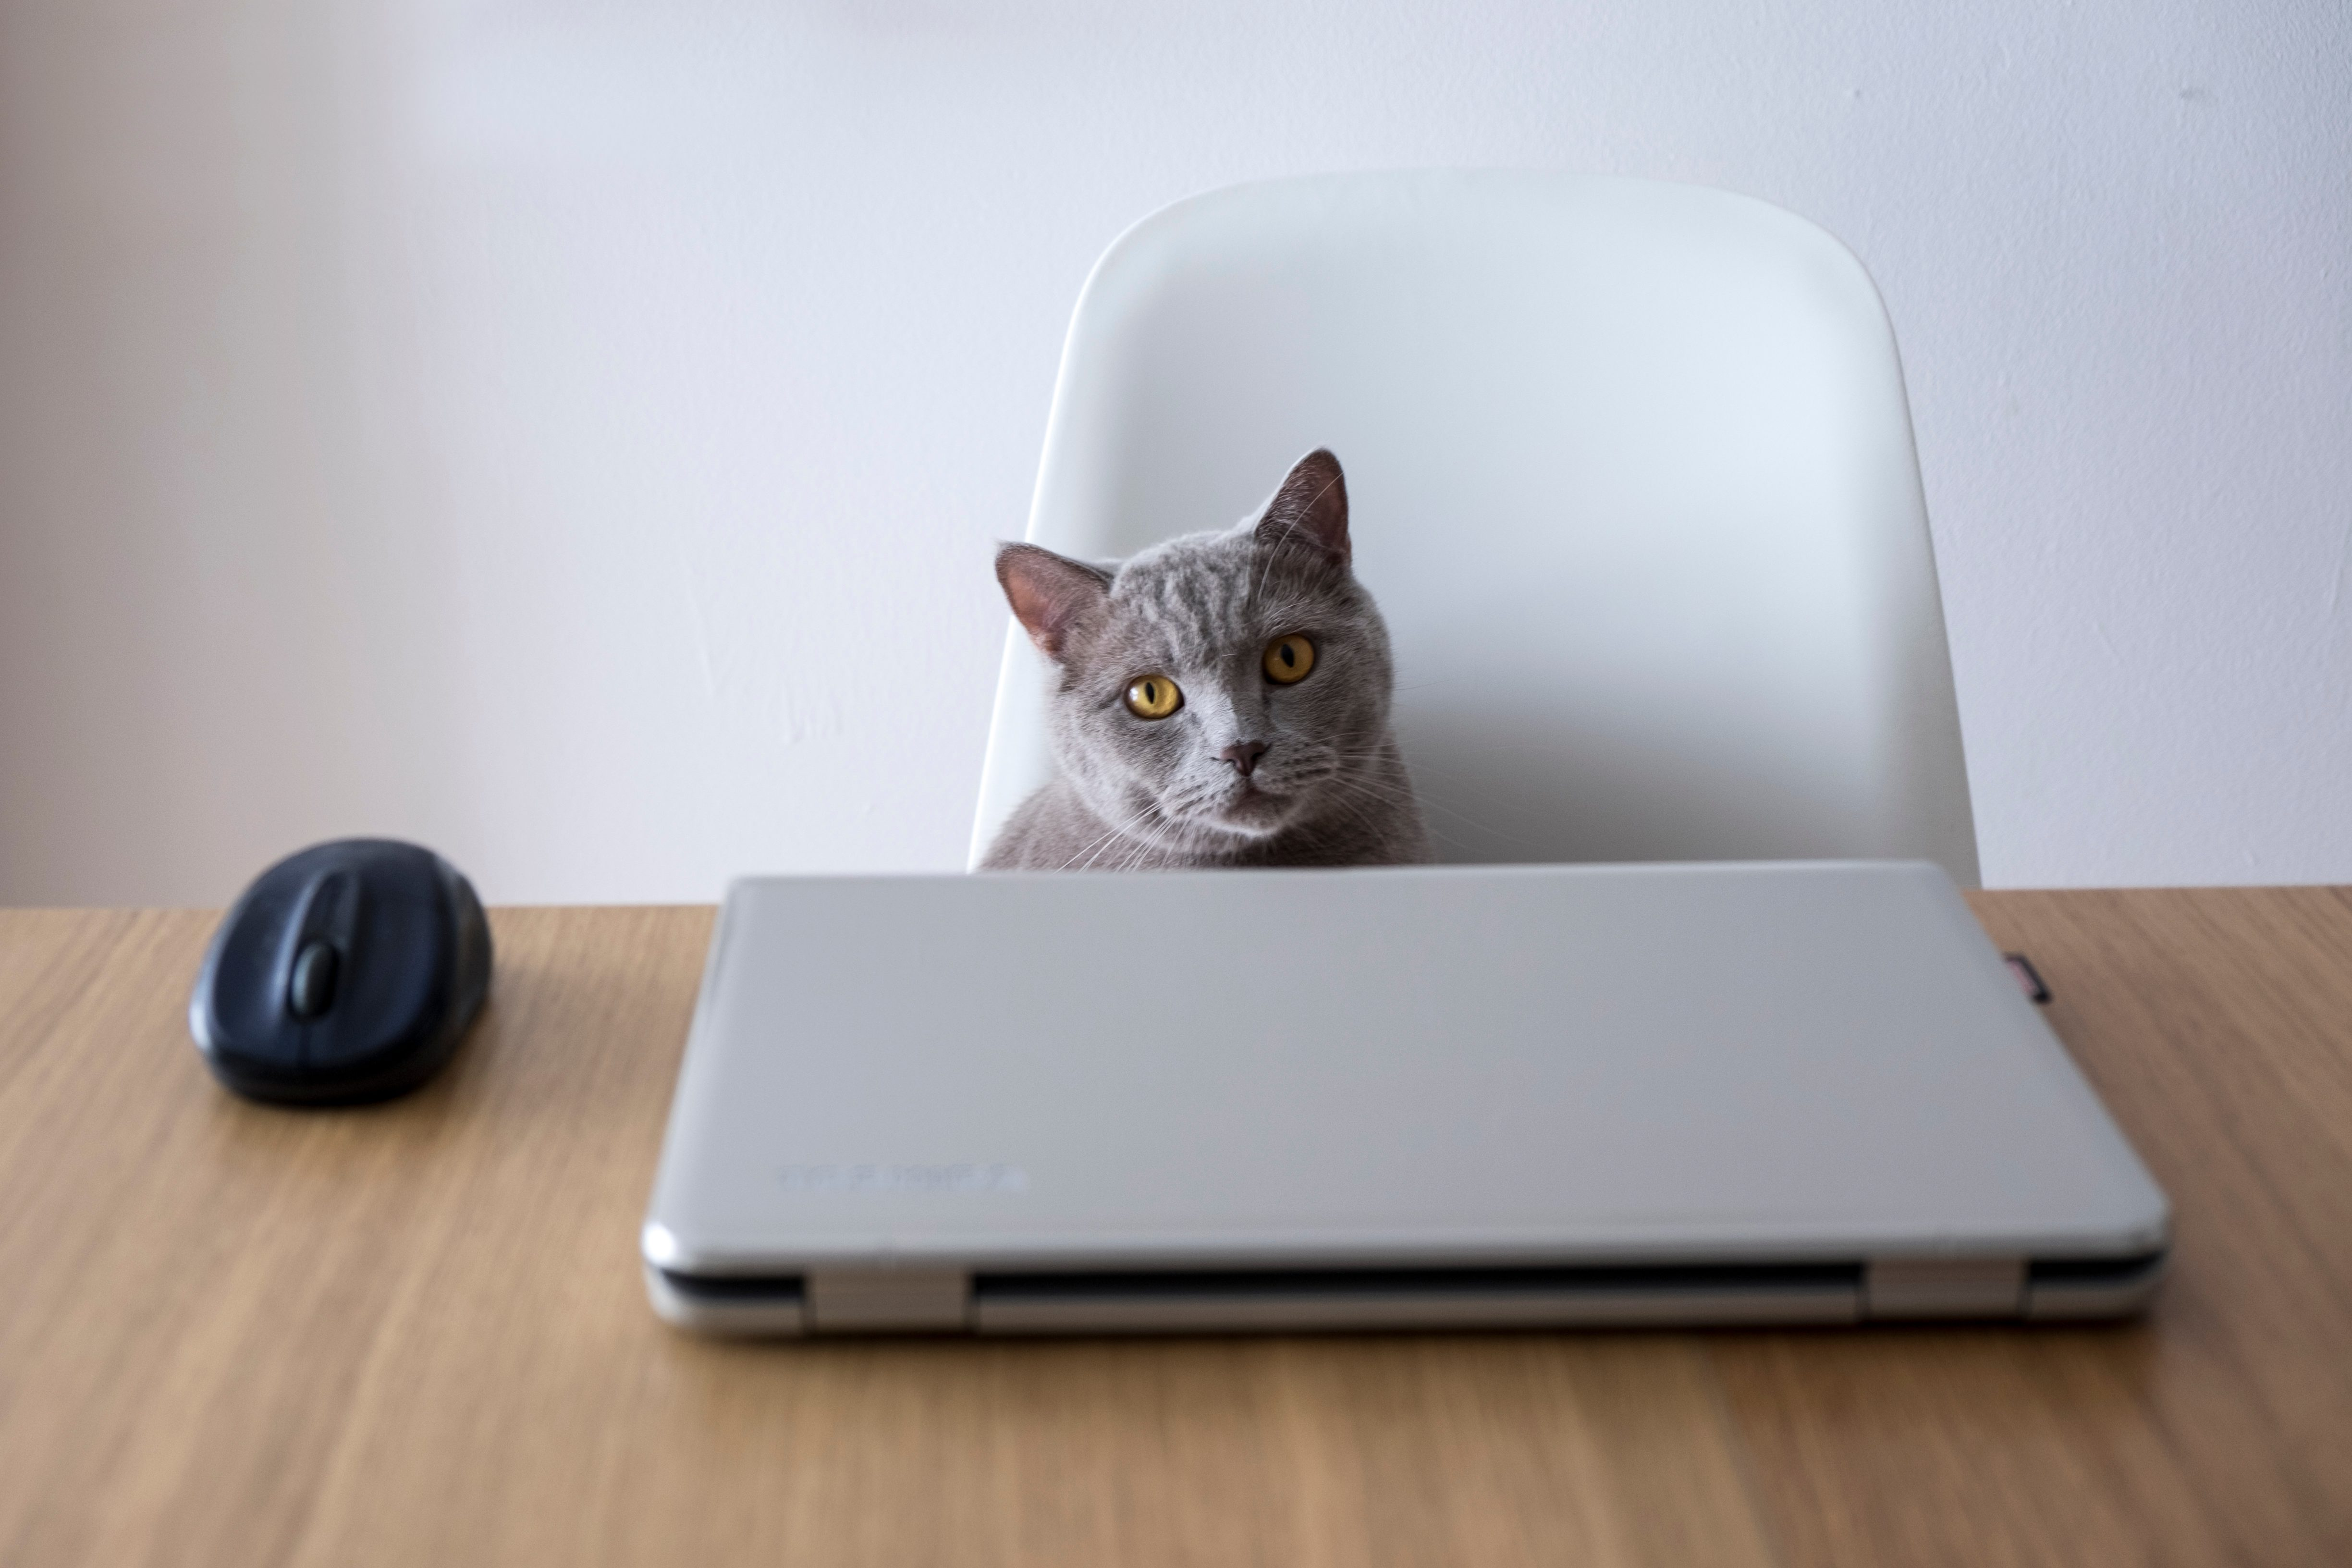 Cat sitting on a chair in front of a laptop